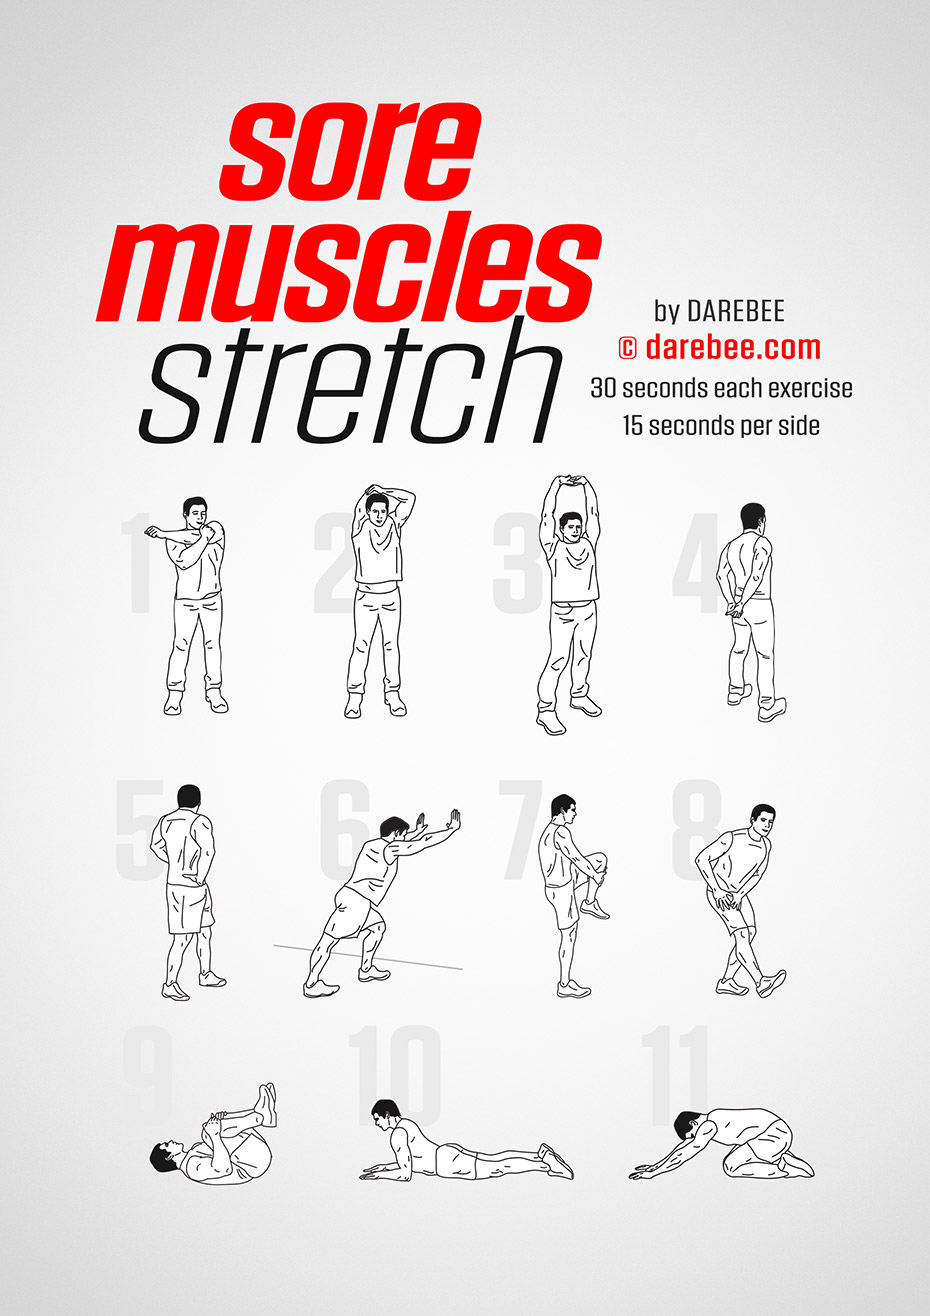 Sore Muscles Stretch by DAREBEE #workout #fitness #fit #wod #exercise #abs hashtags